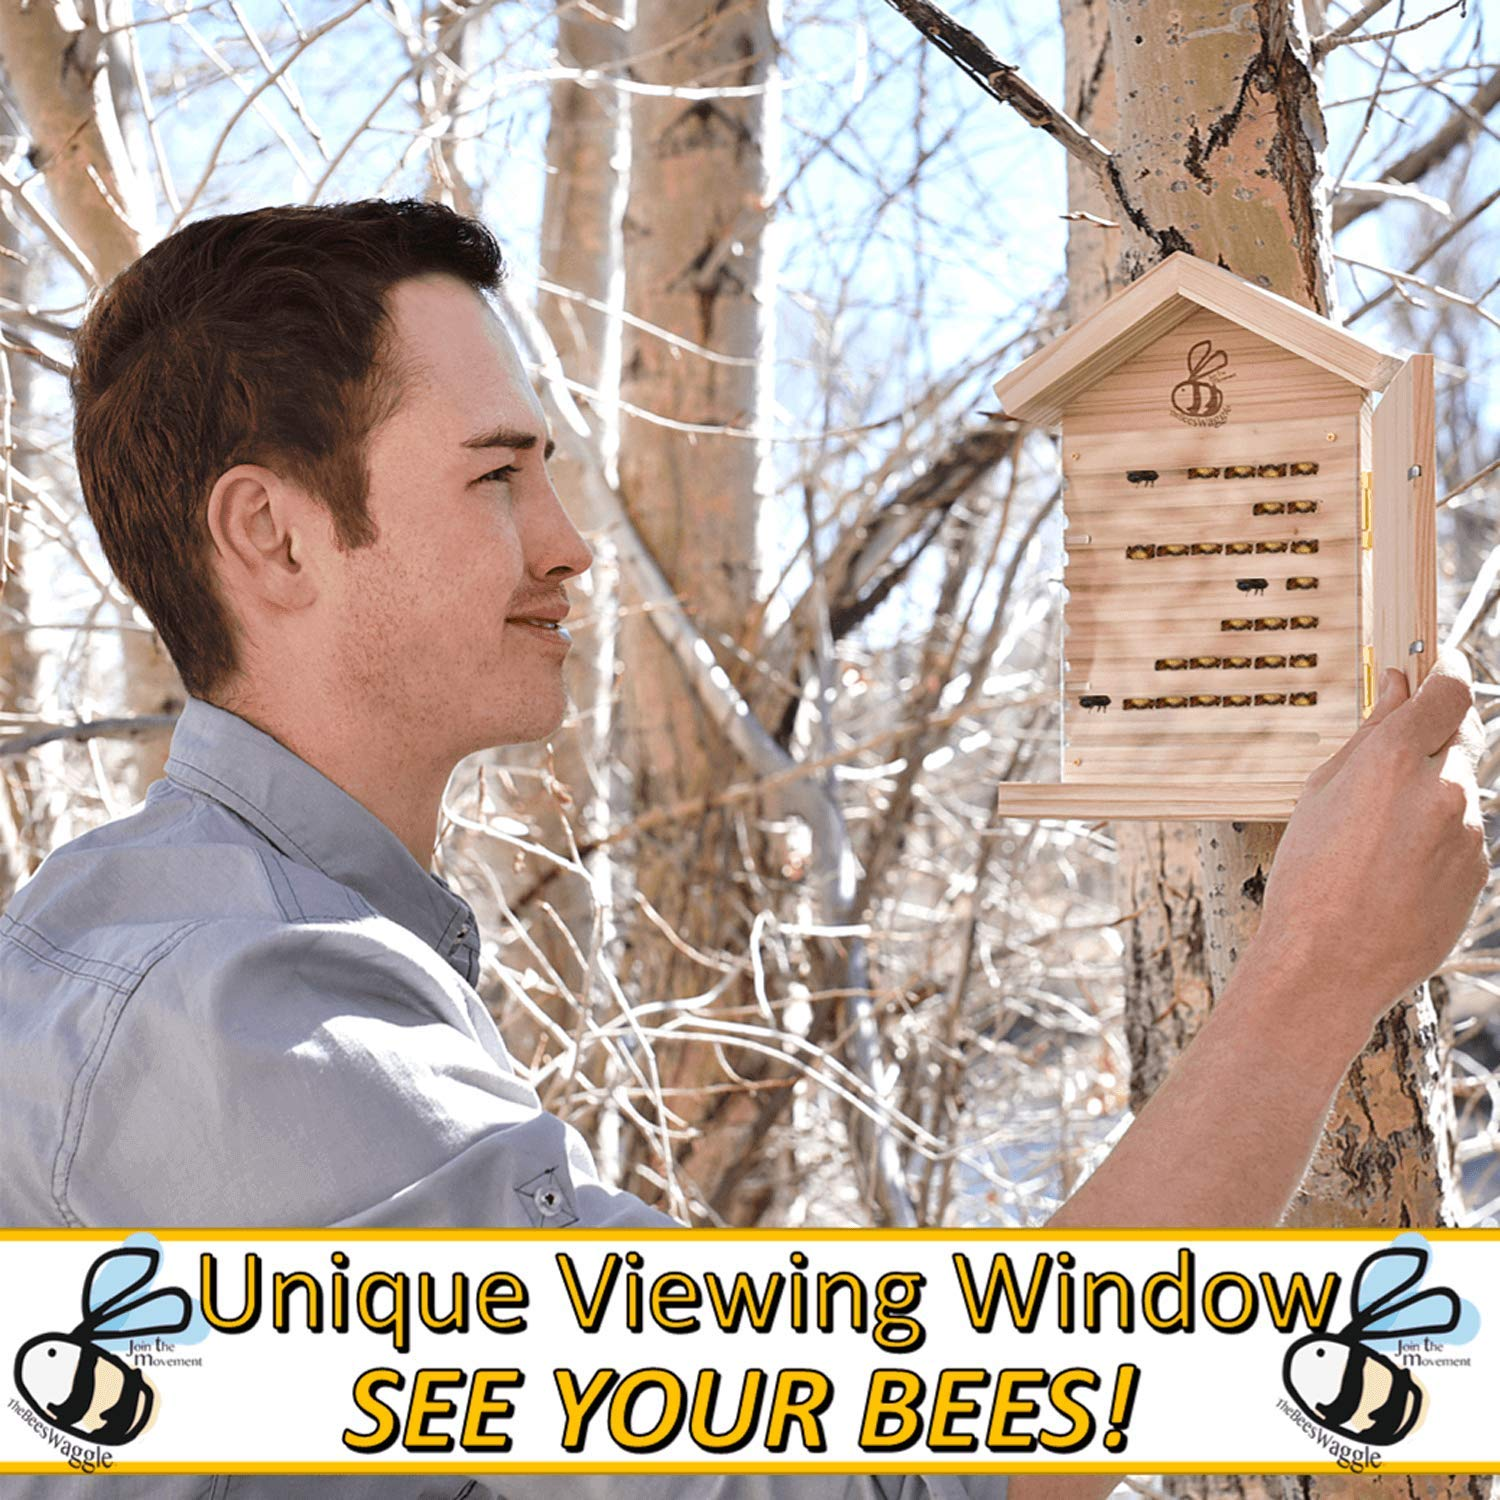 CRACK'N Special - Save $30 Now - Mason Bee House for Solitary Bees - Bonus Viewing Window, Wildflower Seeds, Guide - Wooden Beeblock Bee Home Nest to Attract Wild Native Bees to Garden - Great Gift by The Bees Waggle (Image #4)